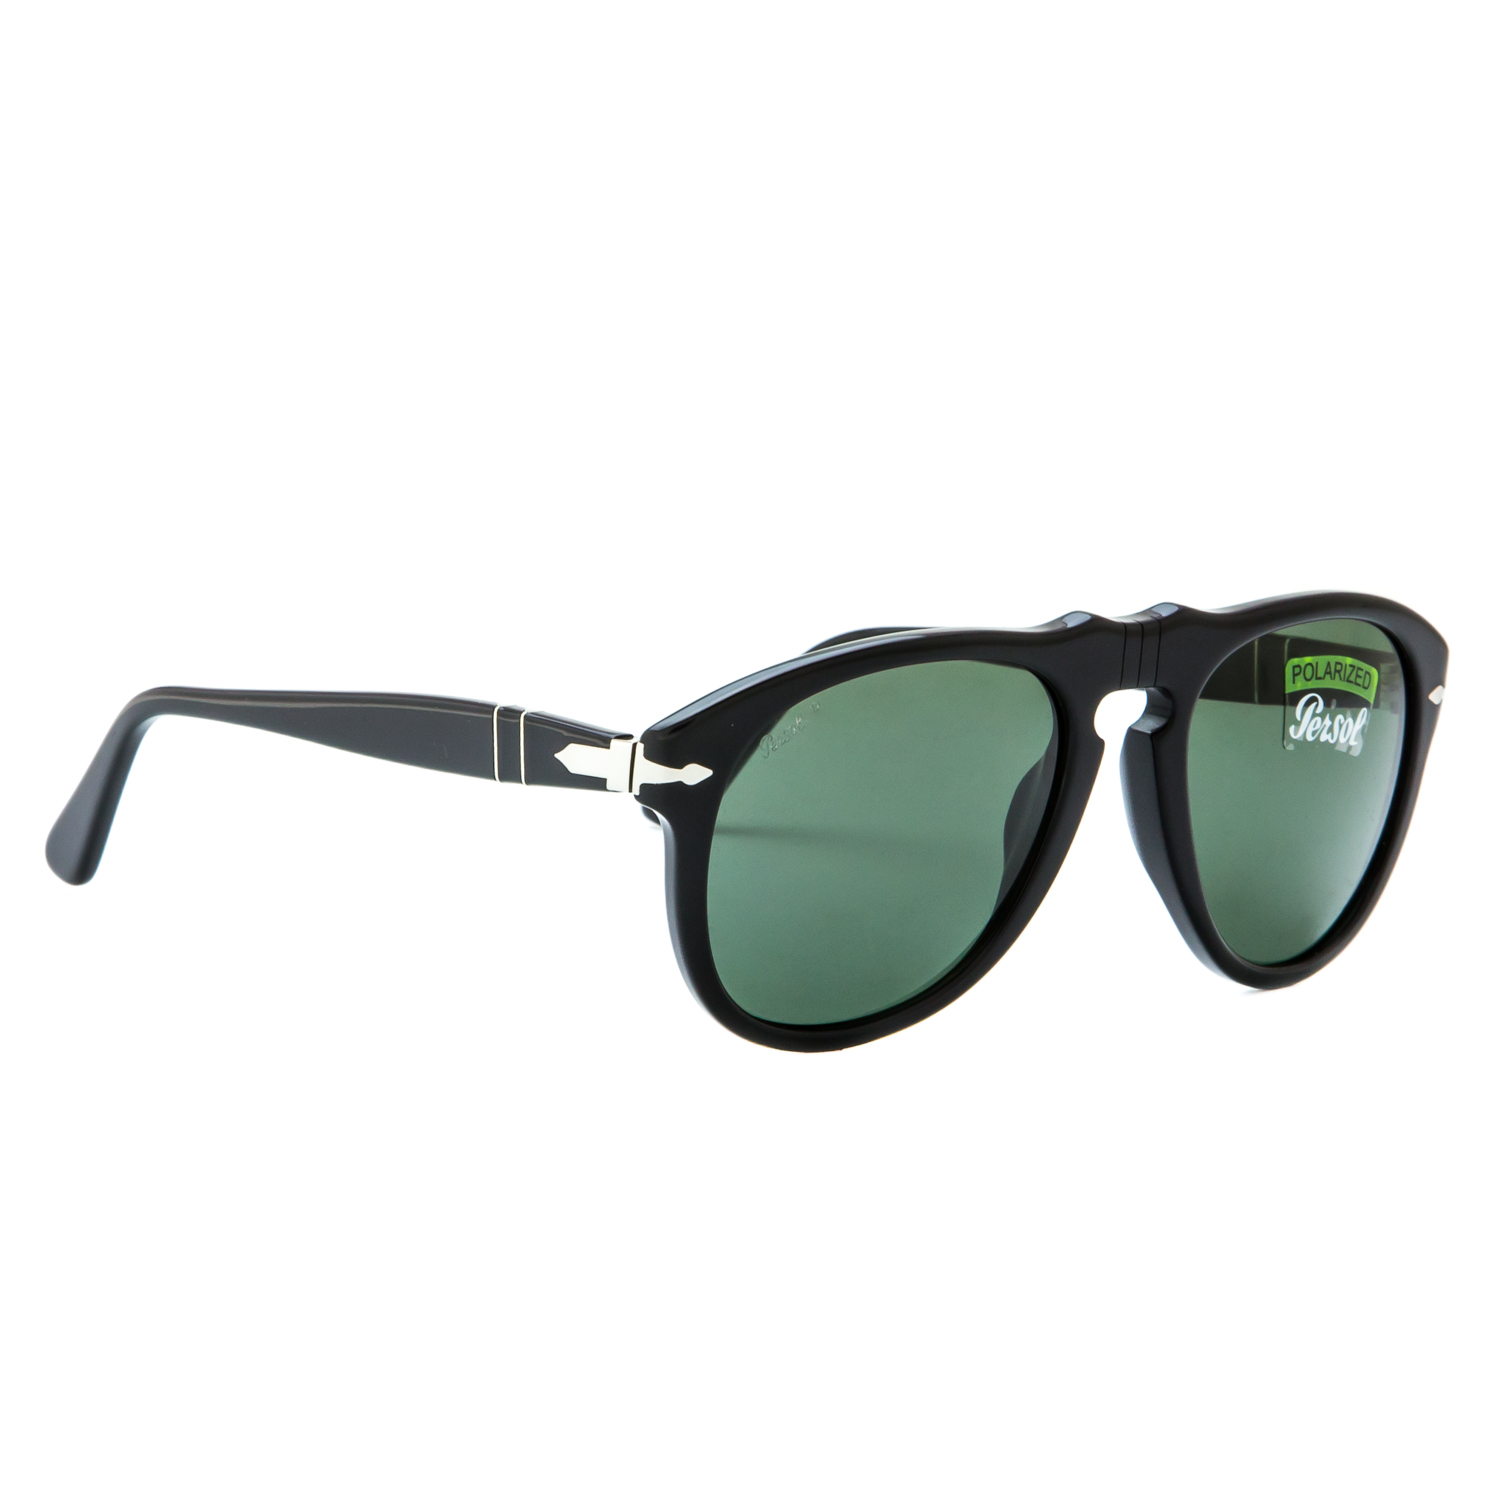 bd722a523bf0 New Persol 649 Polarized Sunglasses « Heritage Malta